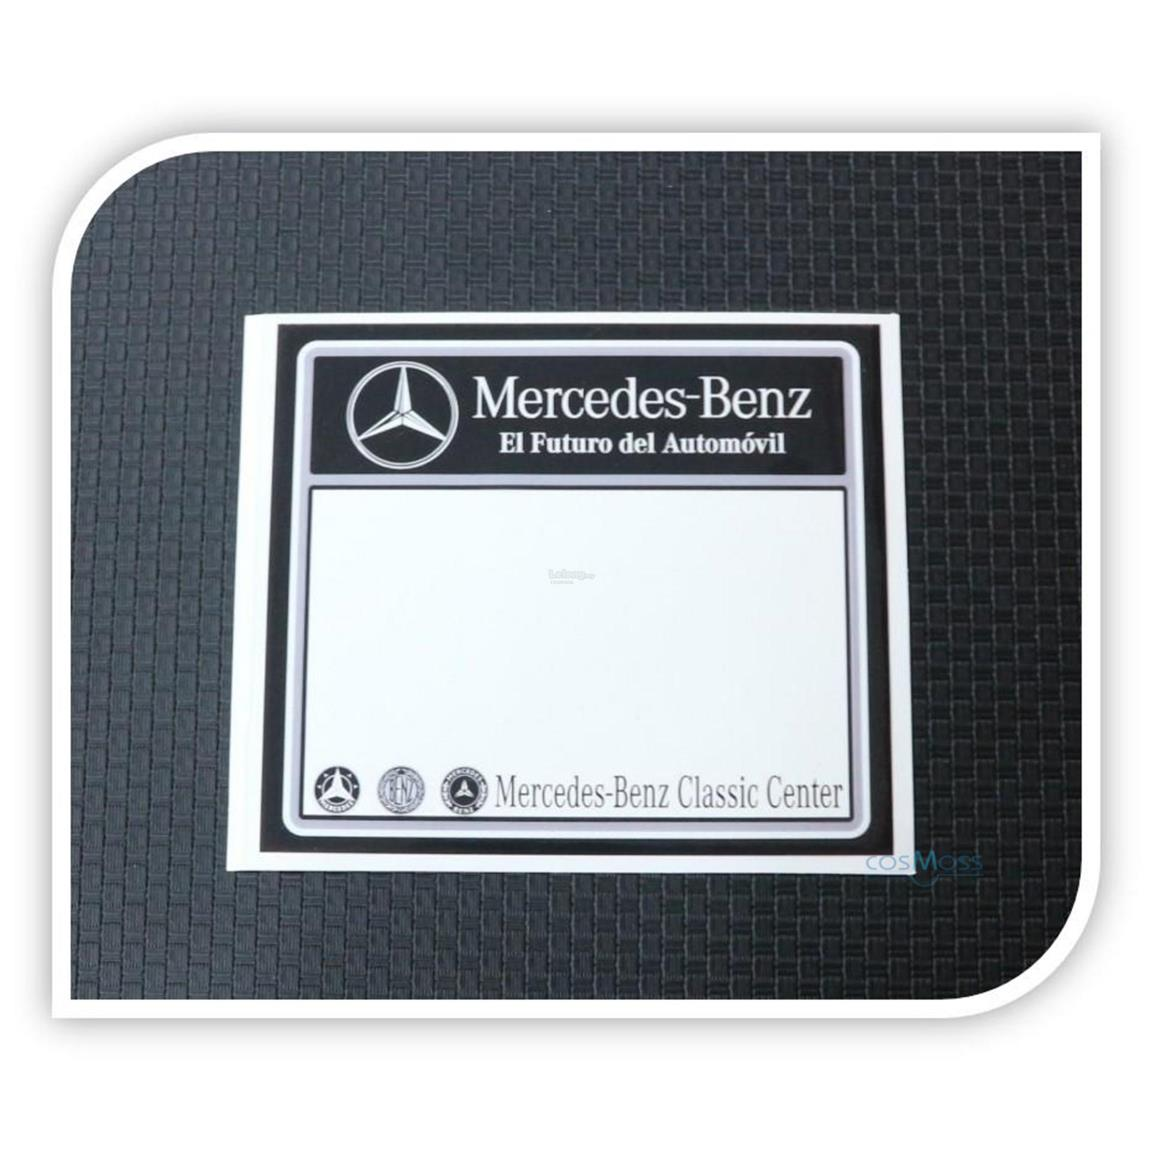 Car Road Tax Sticker Mercedes